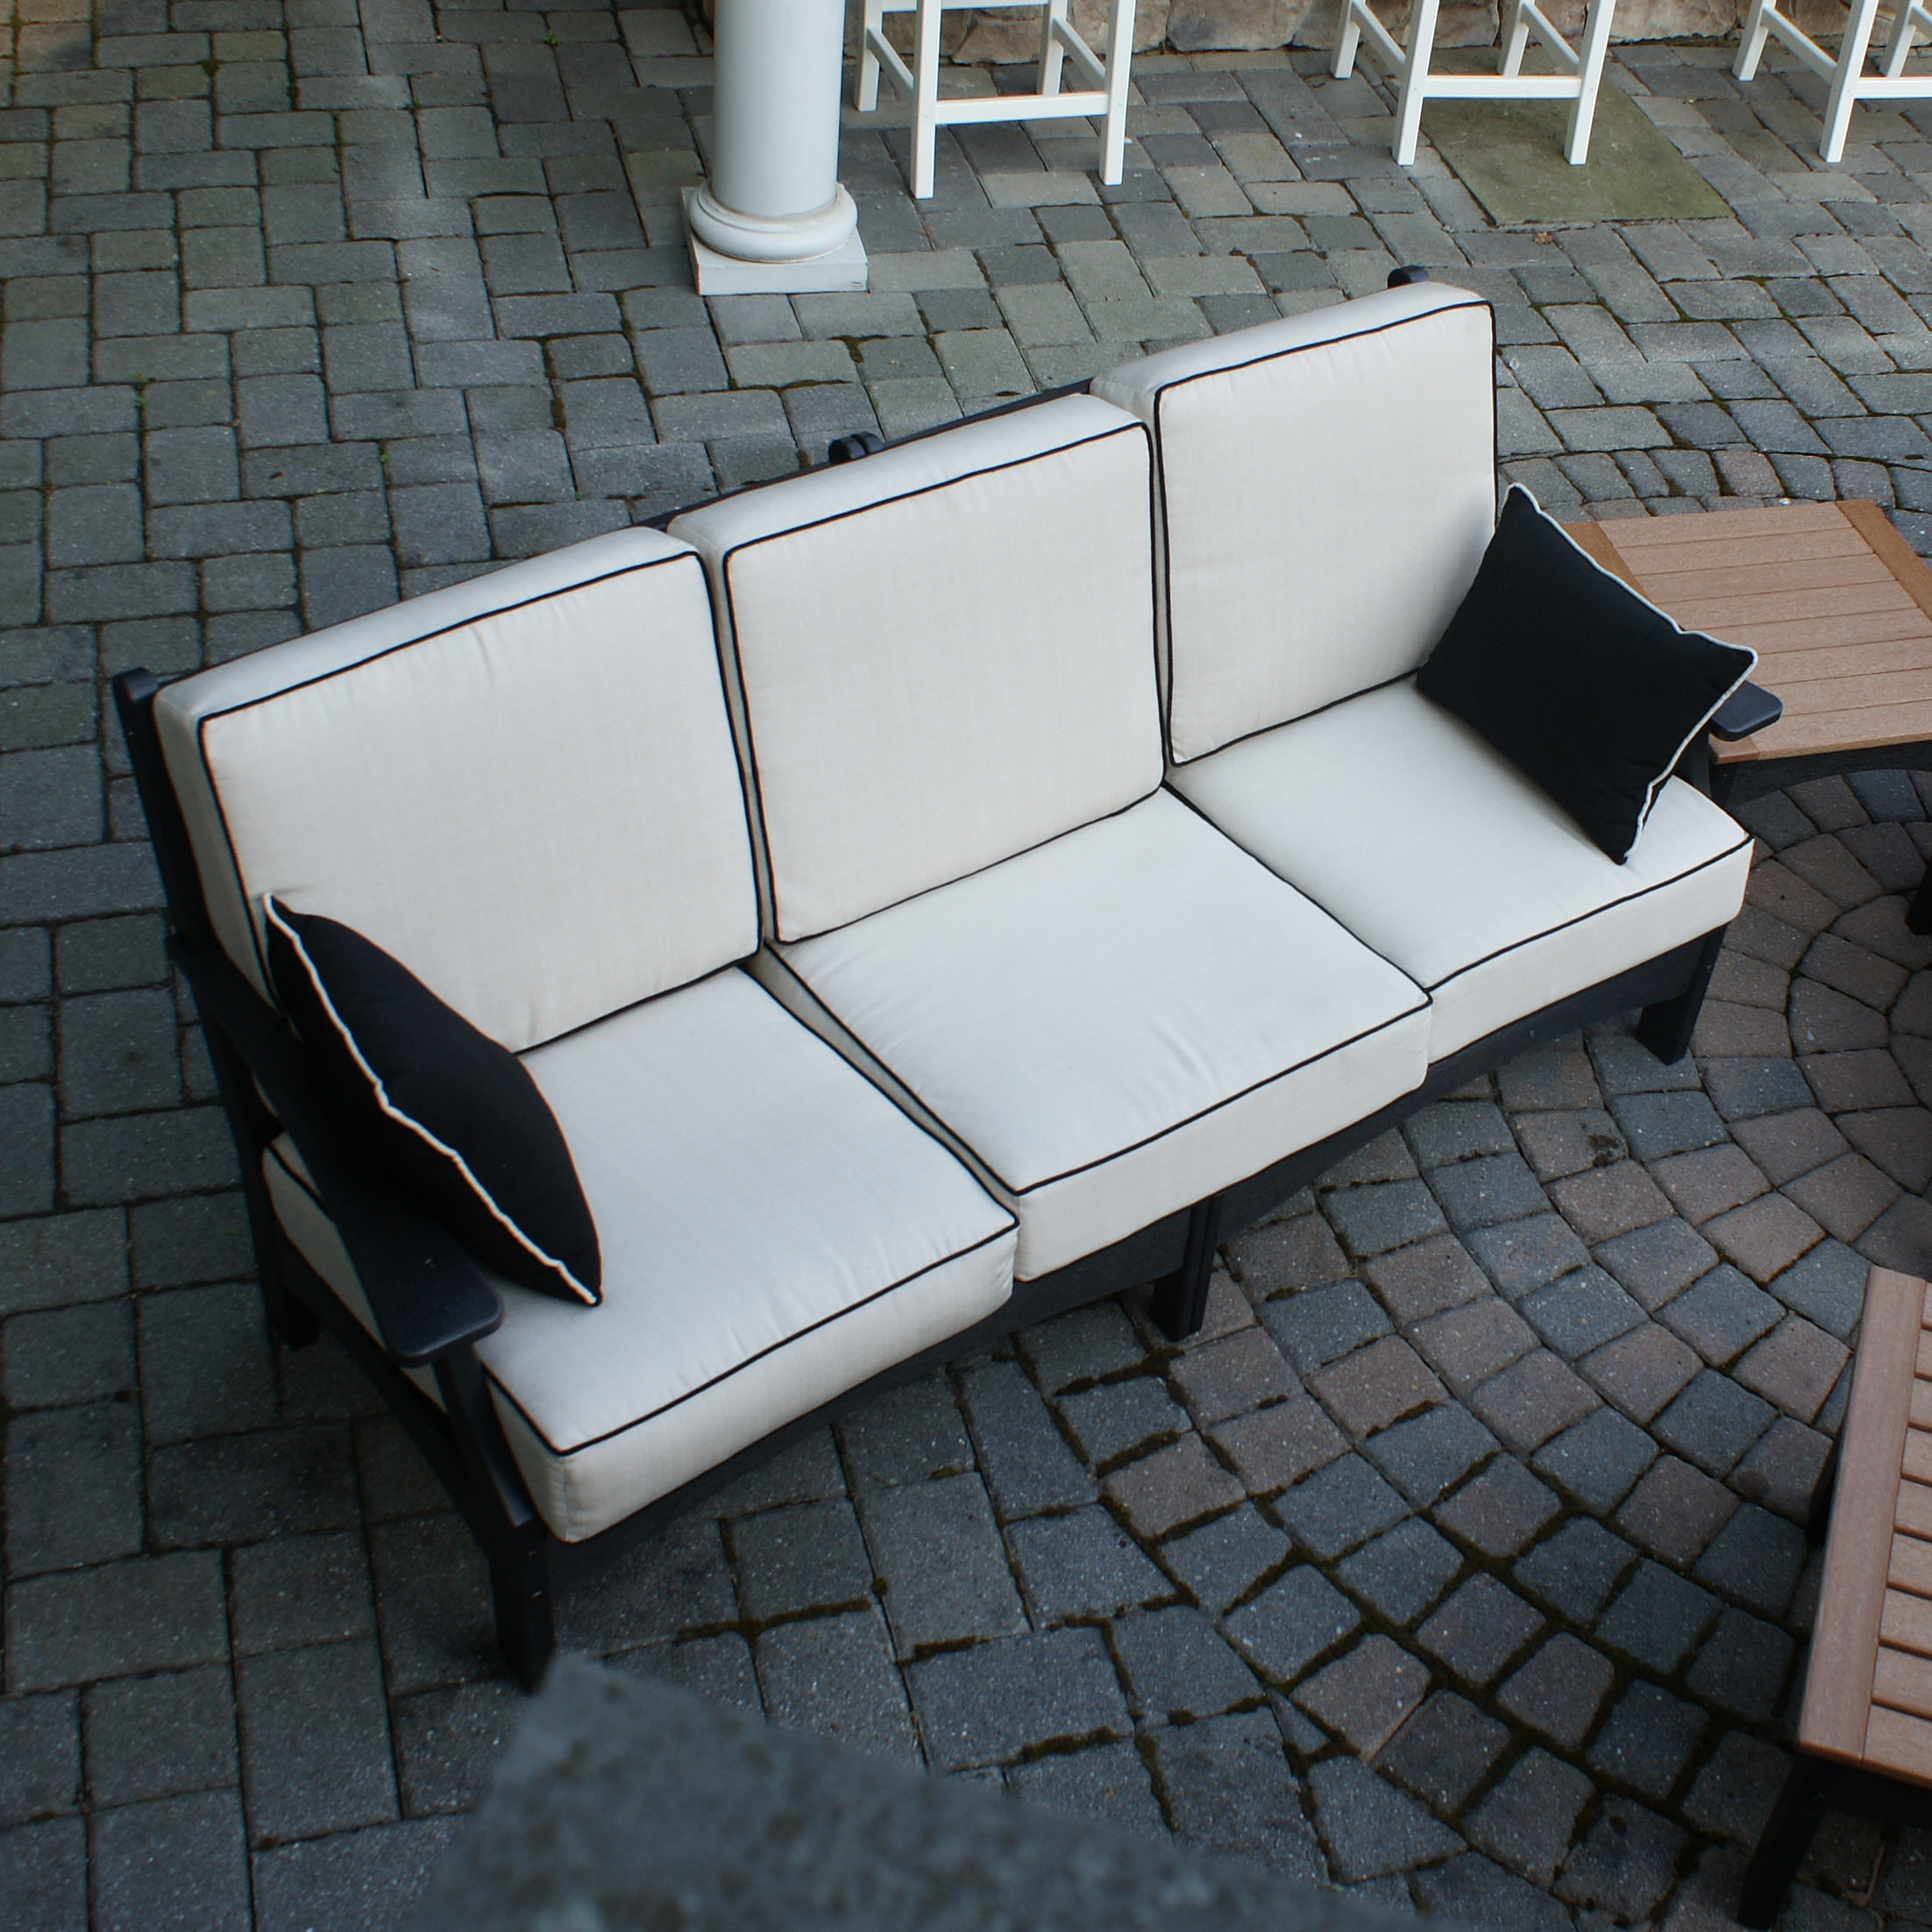 Square Cushions with Black Welting - Pillows sold separately